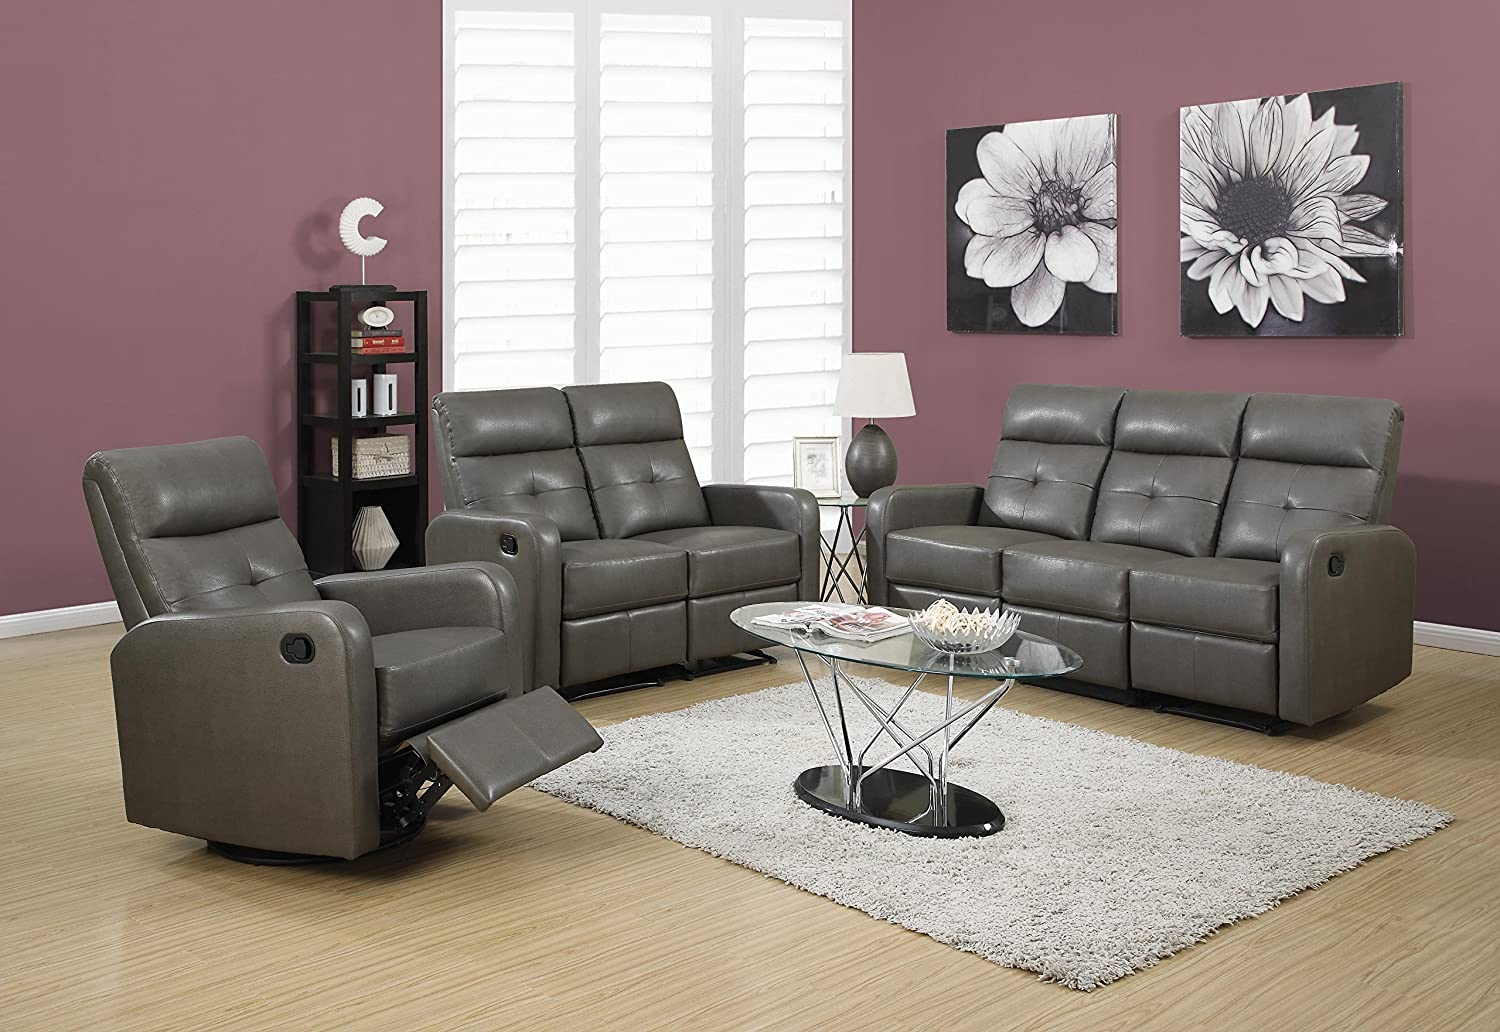 Amazoncom Monarch Specialties I WH Reclining Sofa In White - Recliner leather sofa